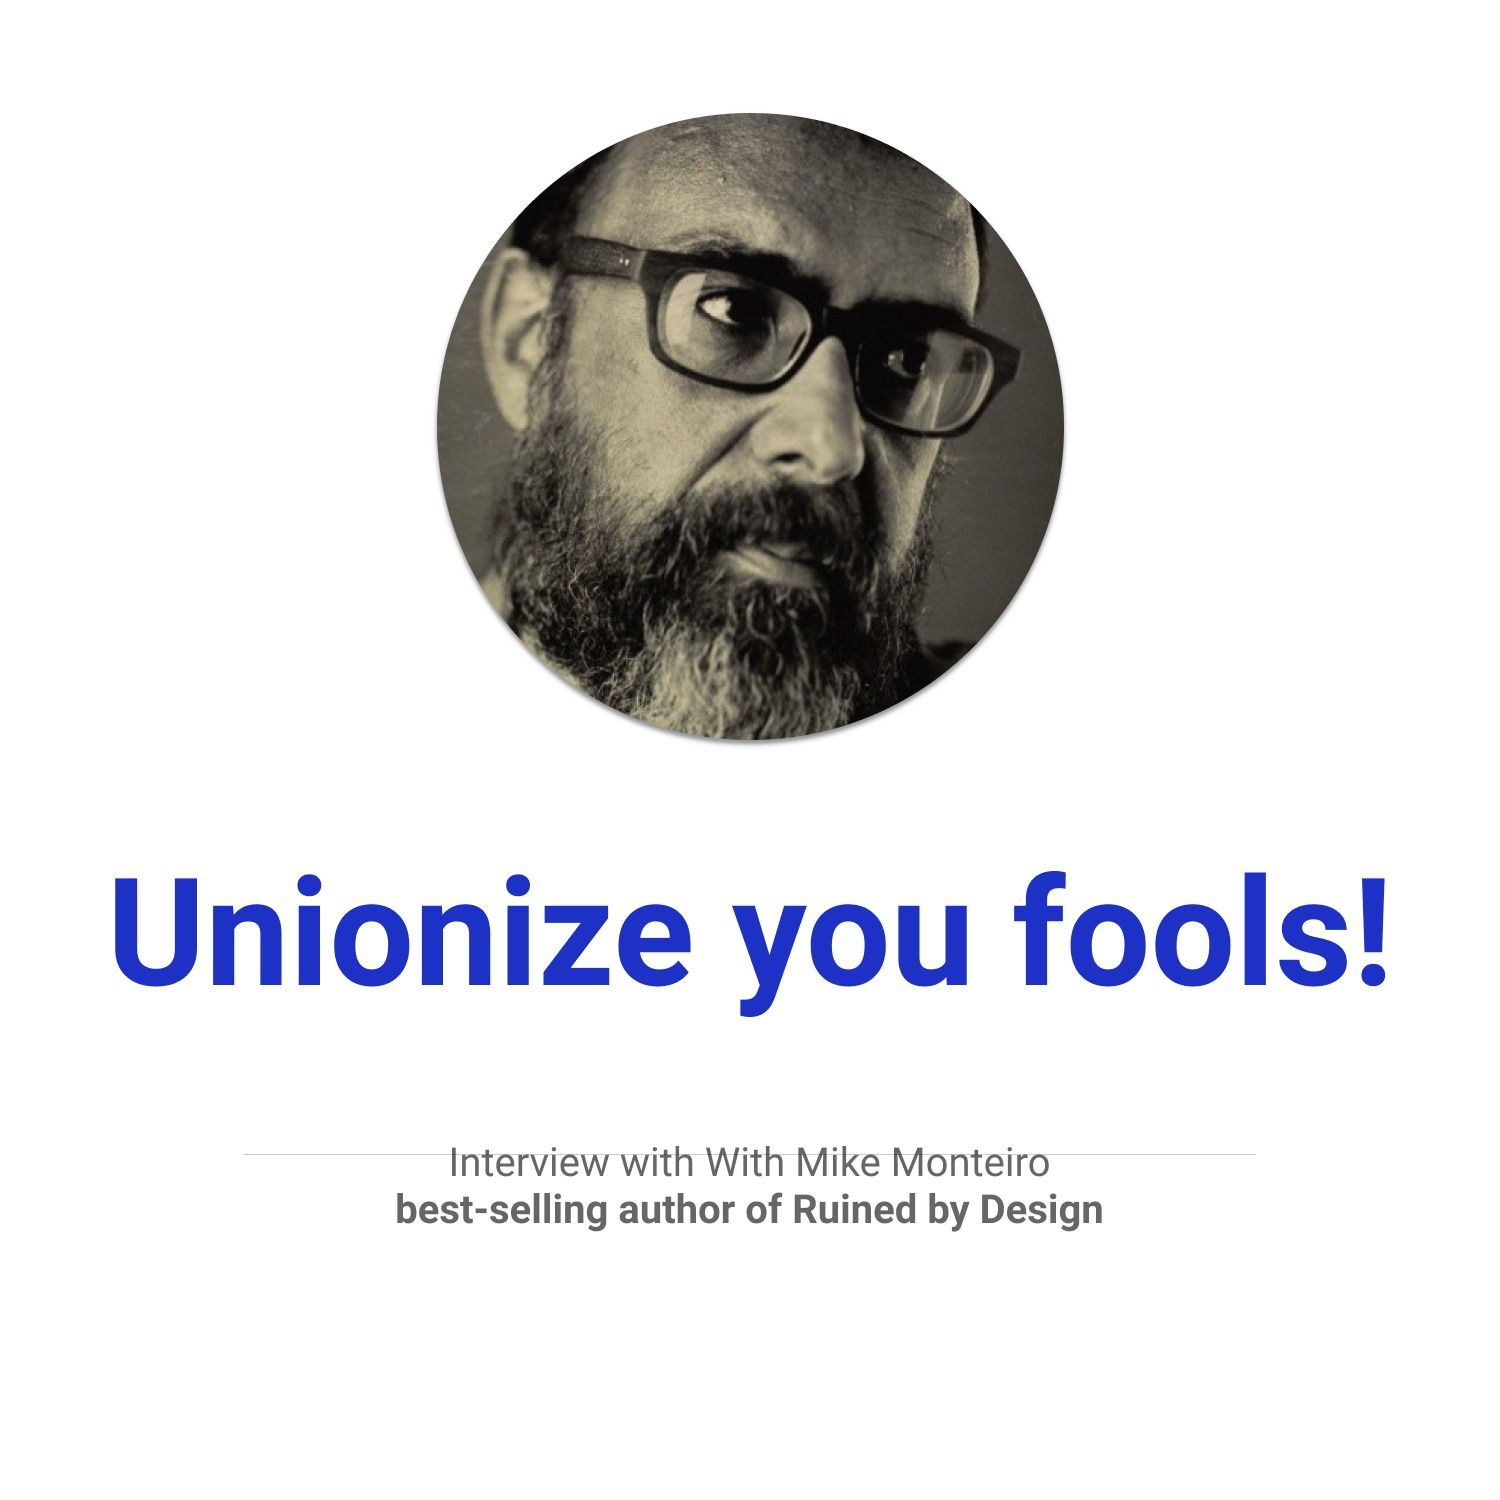 Unionize you fools! With Mike Monteiro